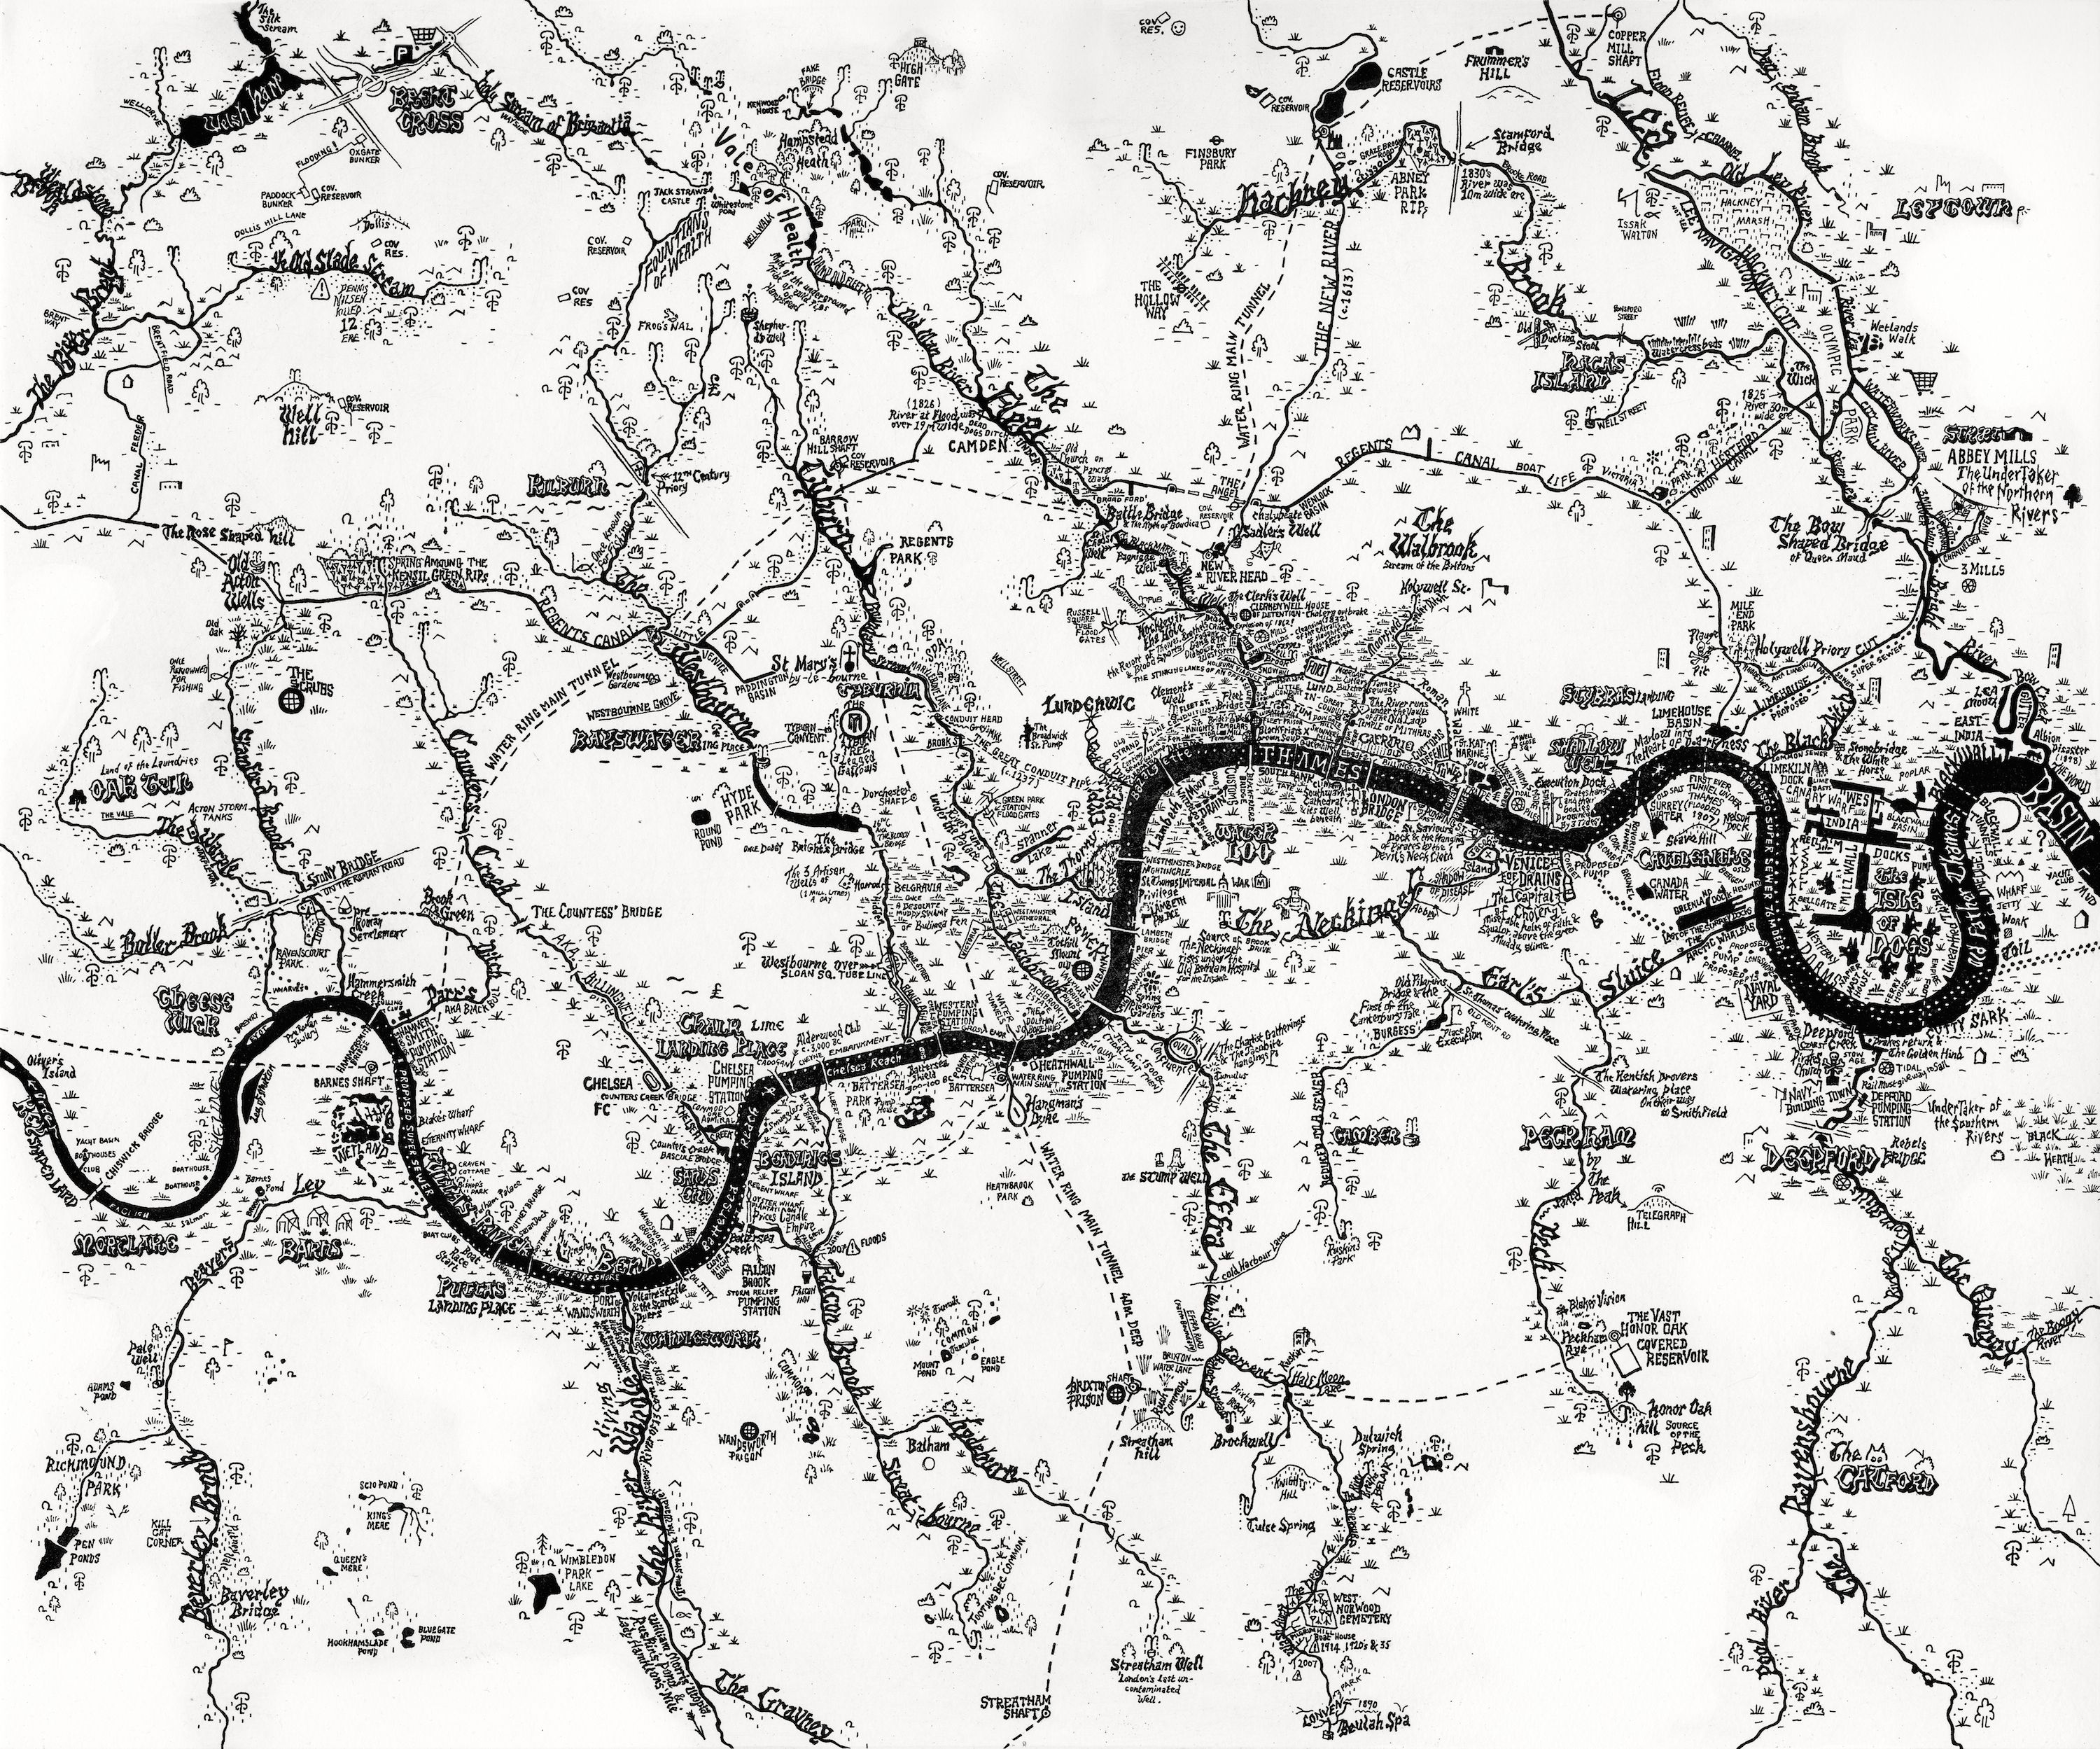 rivers of london amazing hand drawn map by stephen walter oh to 19th Century British Portraits rivers of london amazing hand drawn map by stephen walter